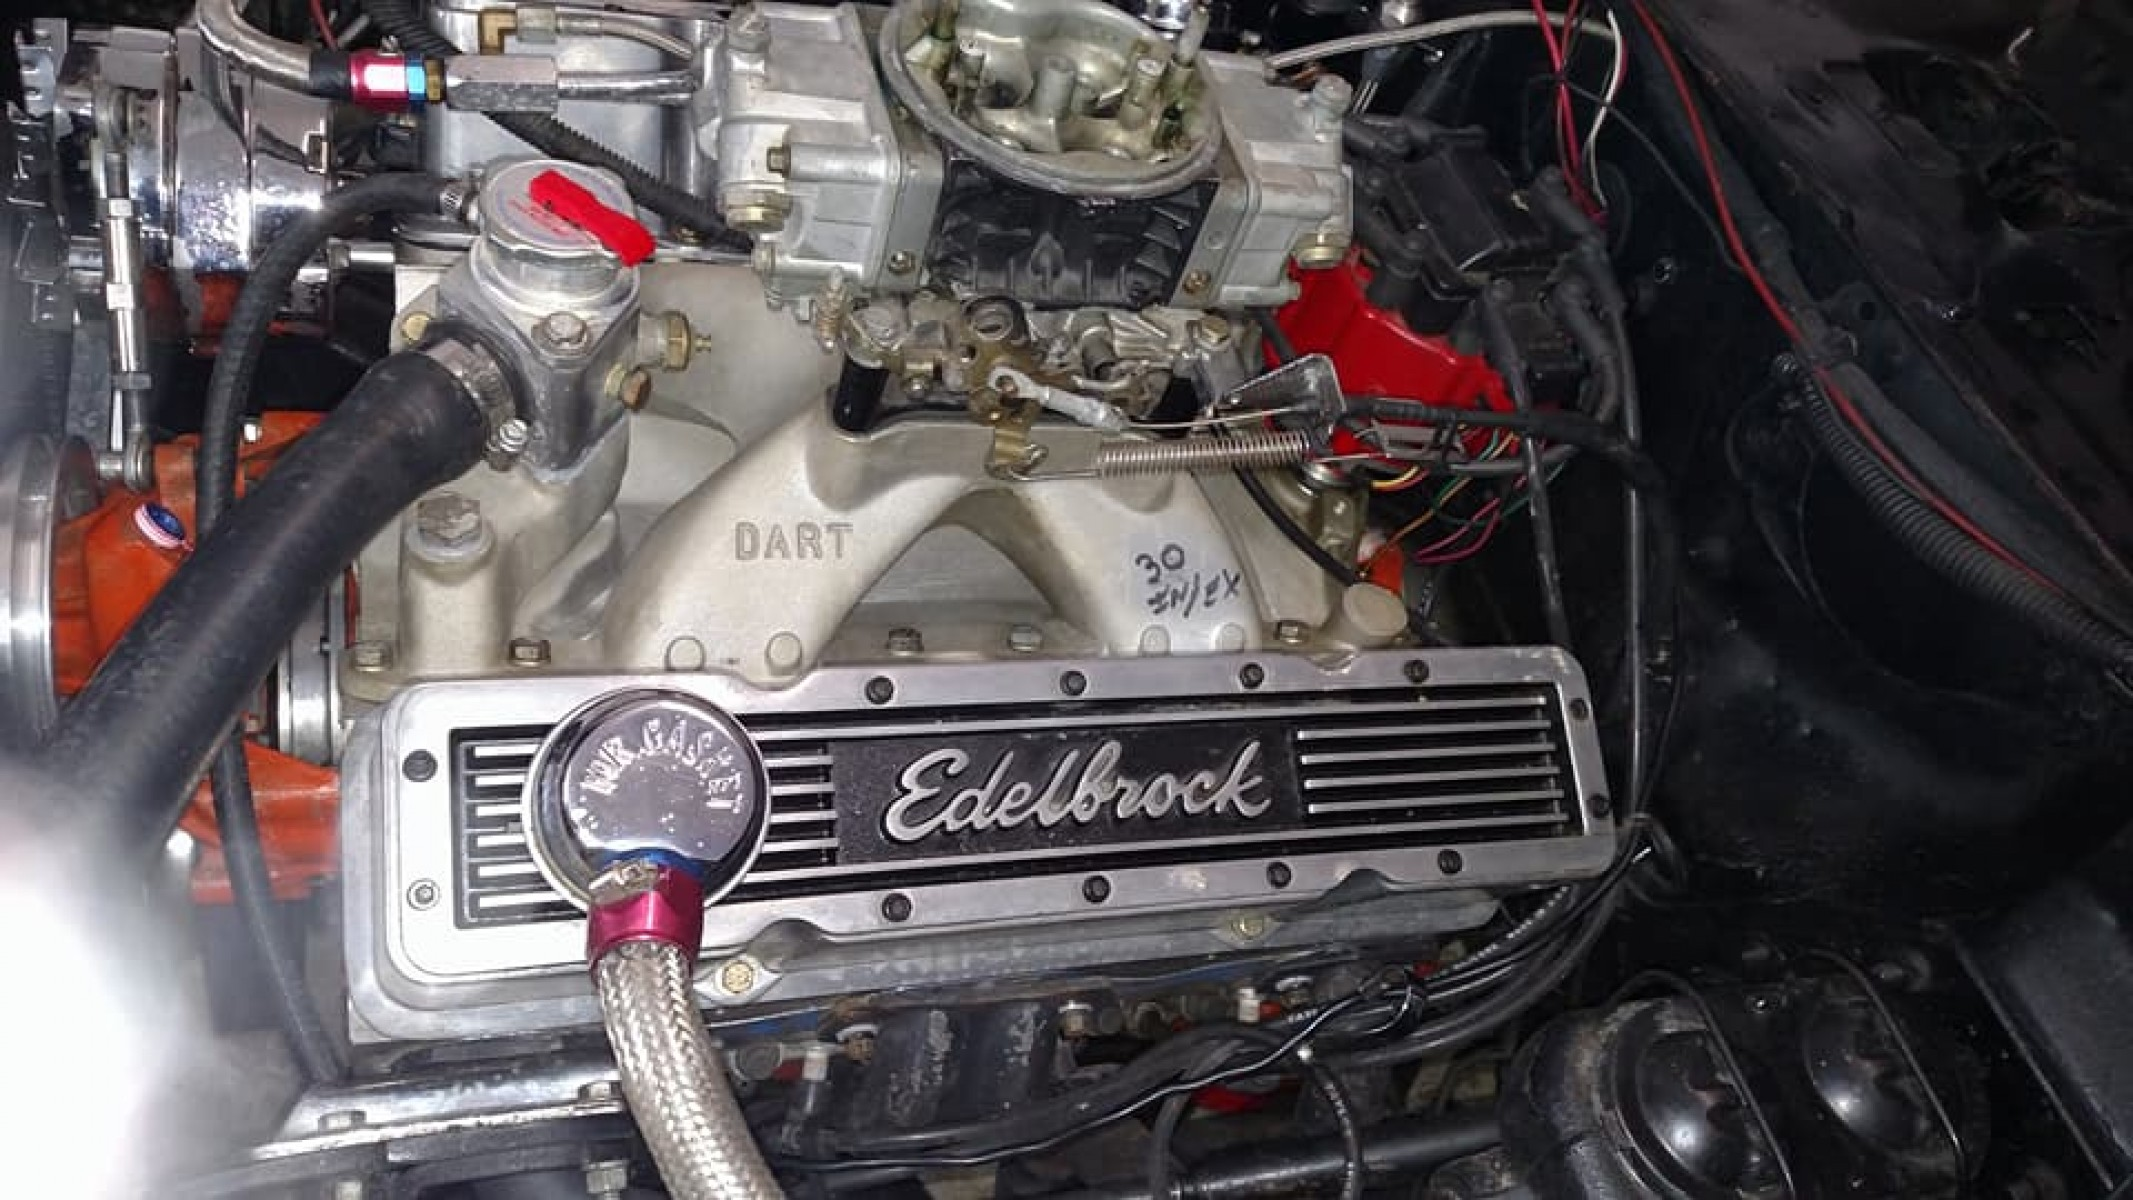 Turbo 350 Transmission For Sale >> Sbc 406 Ci With Turbo 350 Transmission Converter For Sale On